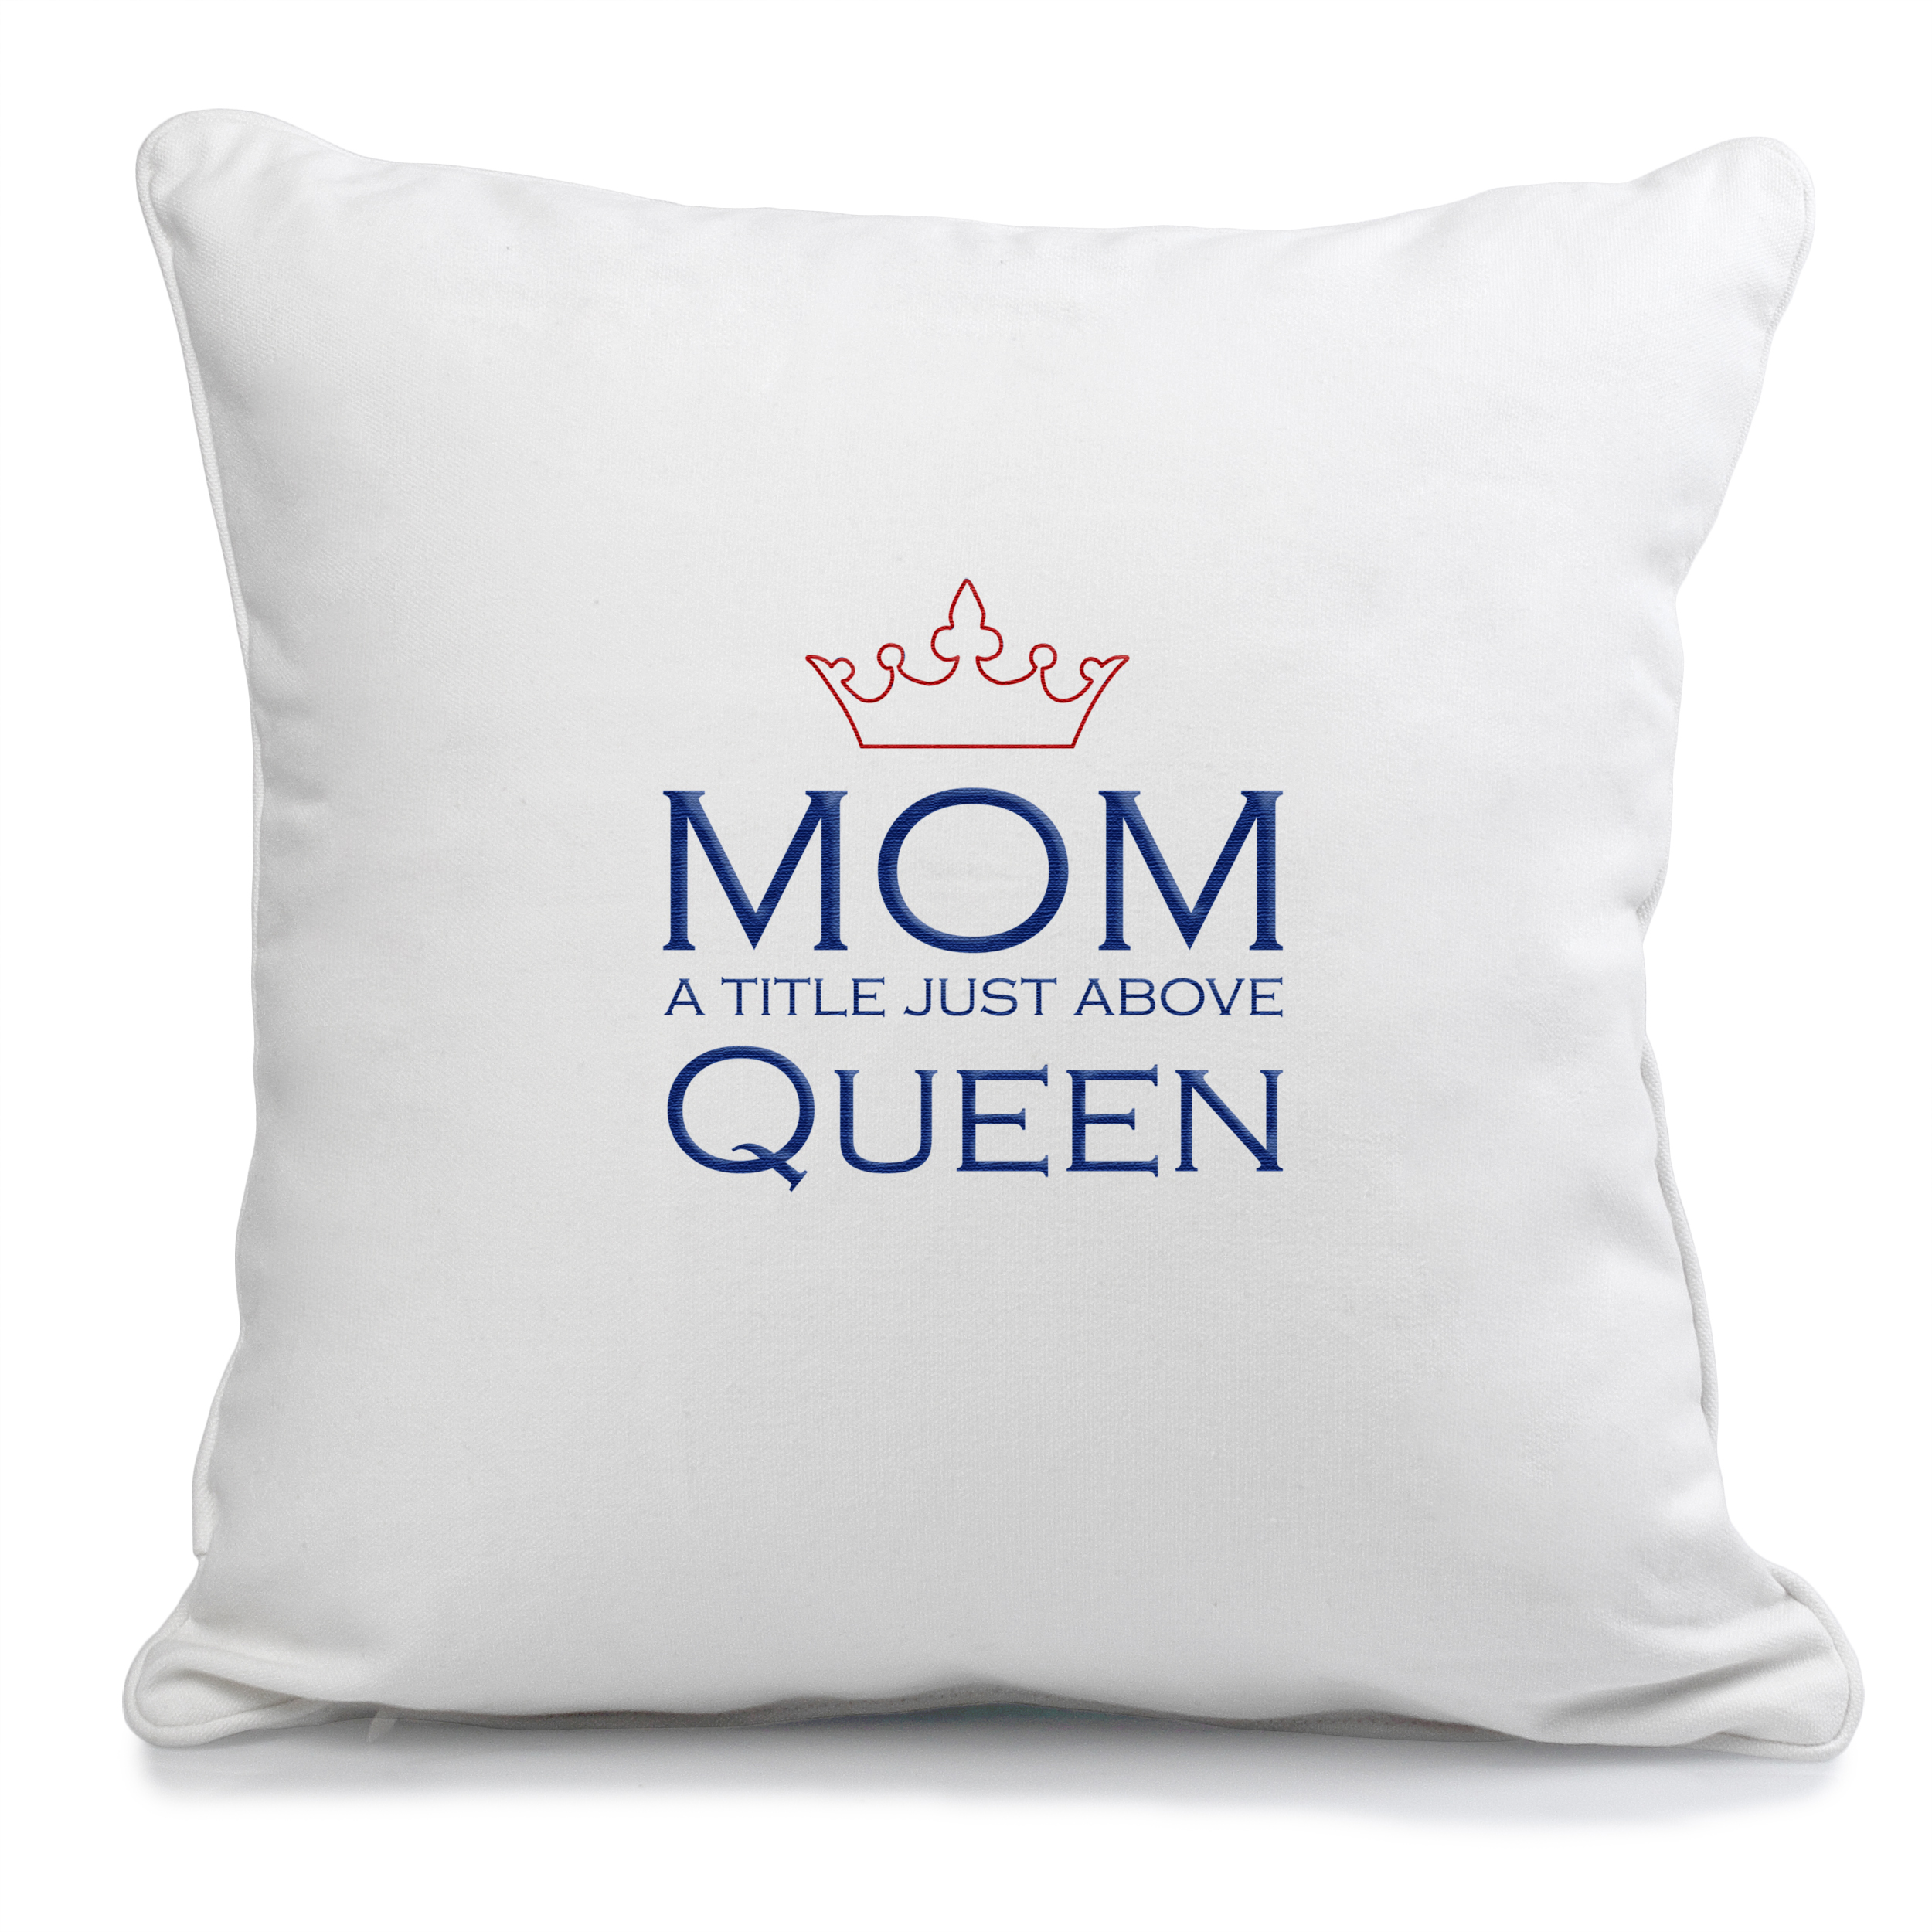 Show mom how royal she is with this pillow boasting a crown